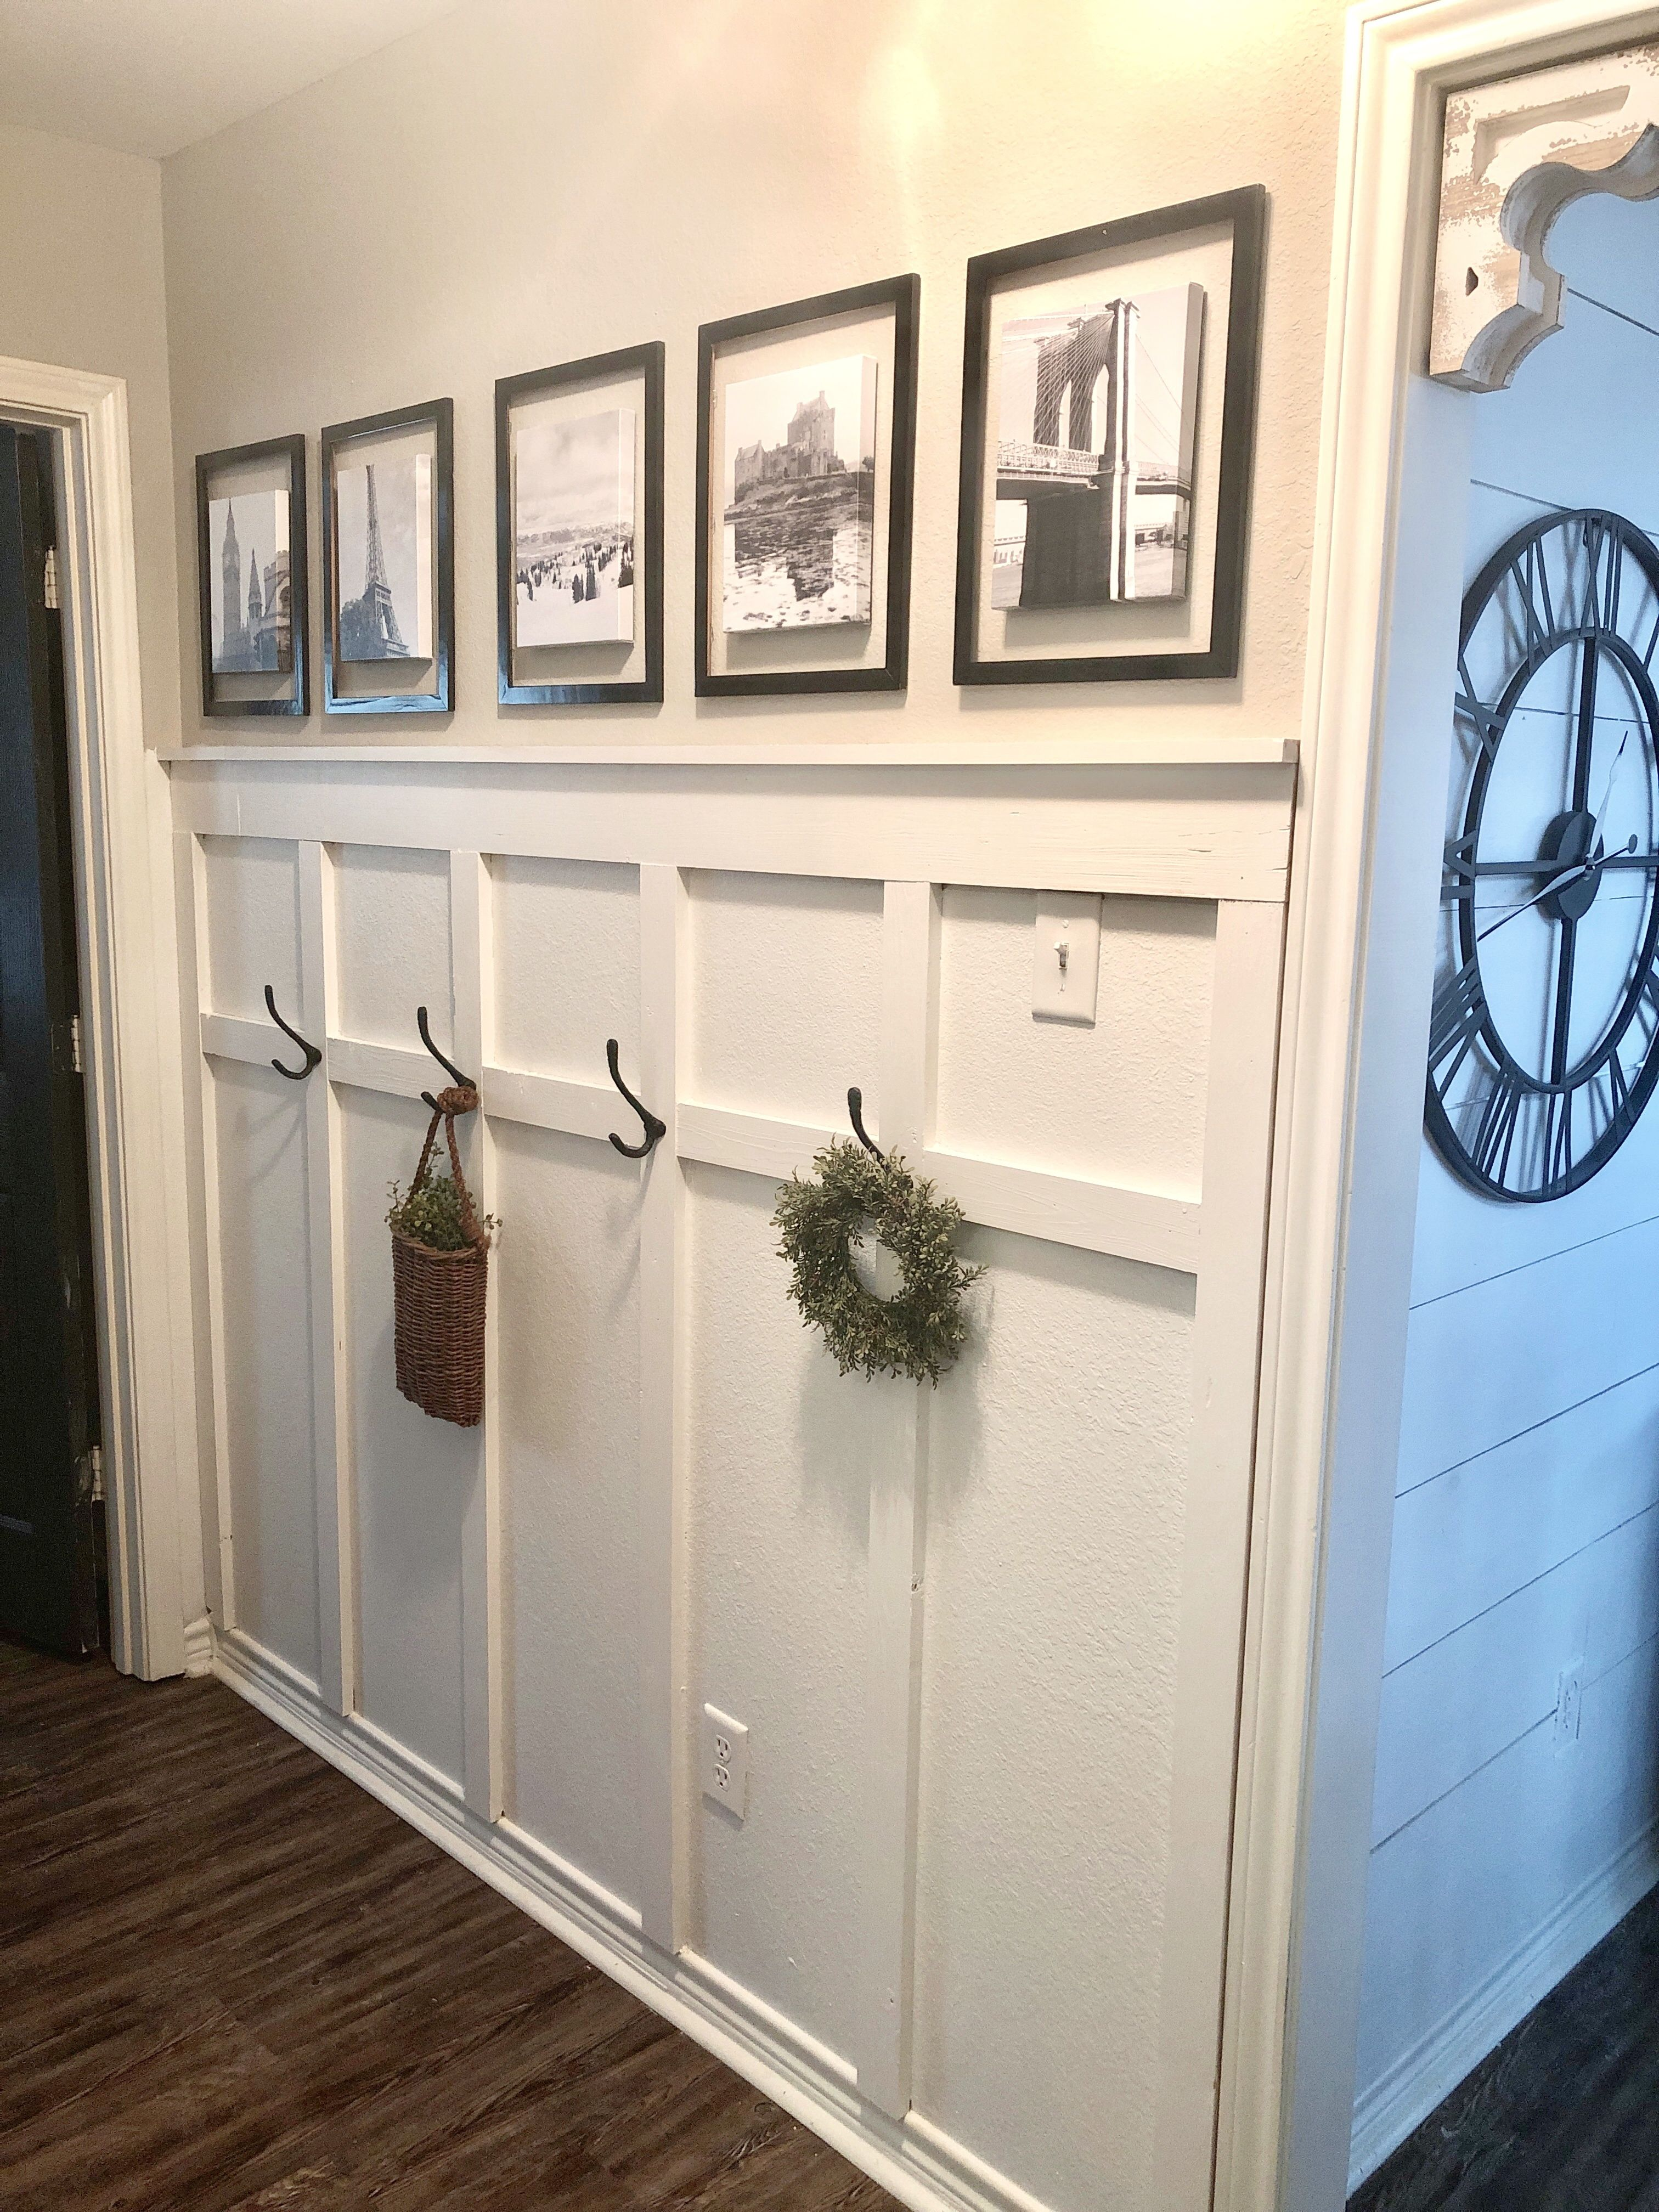 How To Update A Boring Hallway With Board And Batten #boardandbattenwall